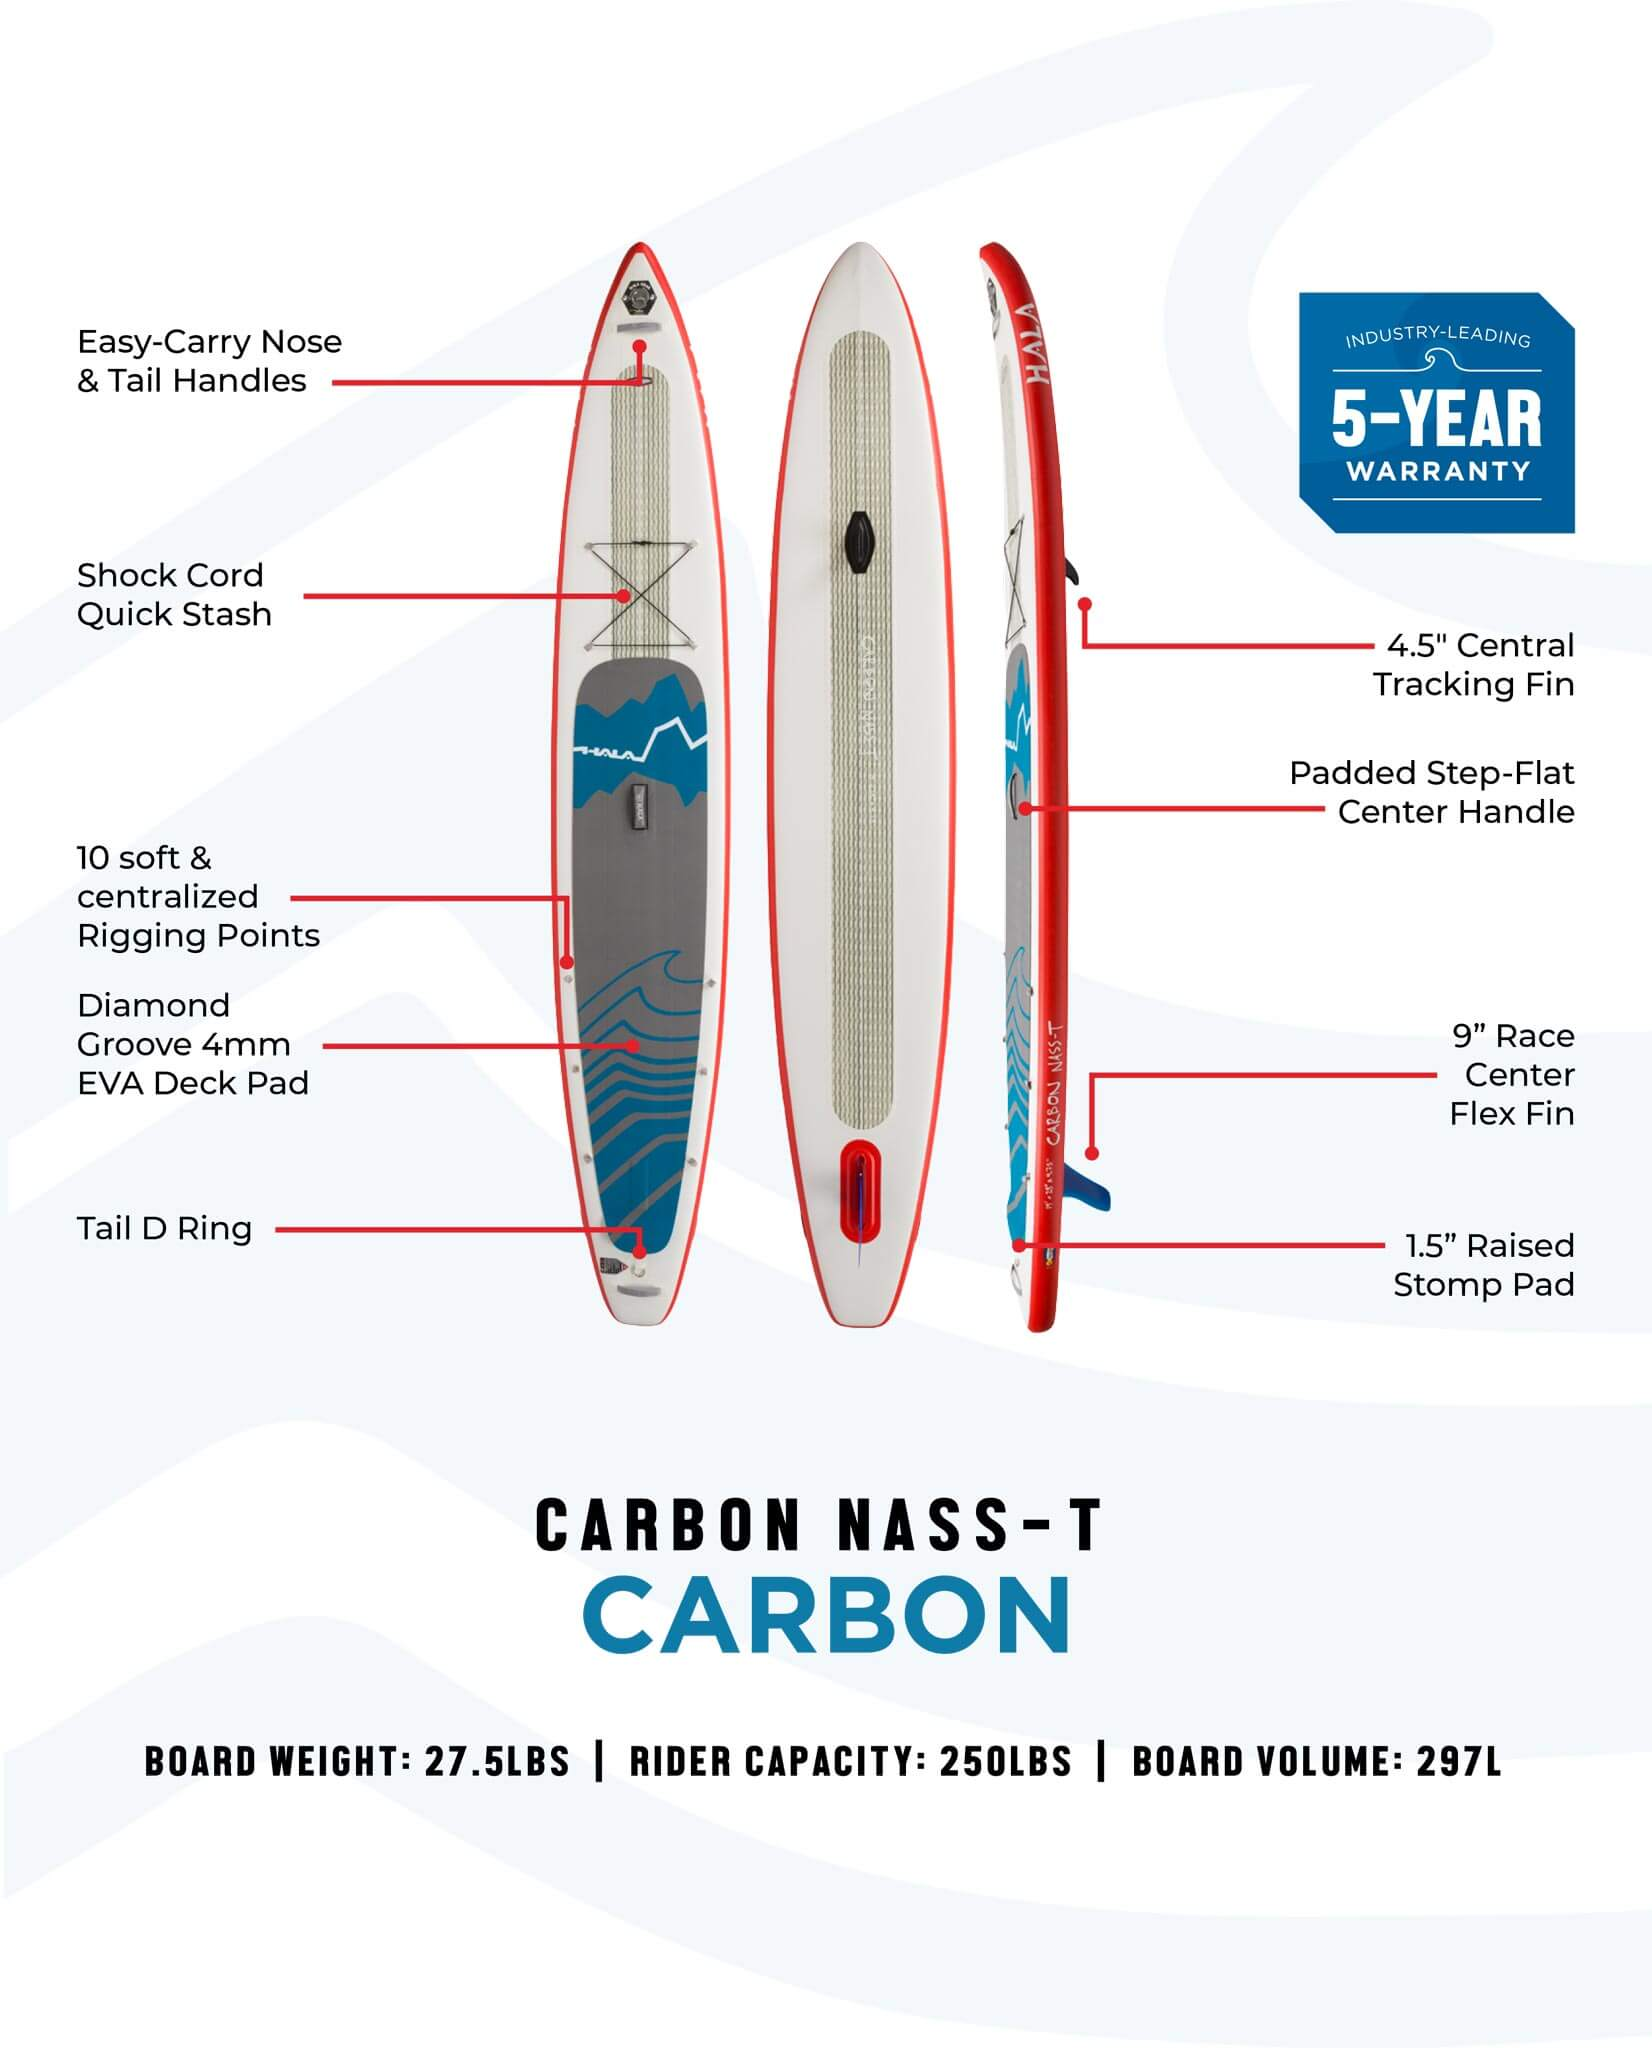 easy-carry nose and tail handles. shock cord quick stash. 10 soft and centralized rigging points. diamond groove 4mm eva deck pad. tail d ring. 4.5